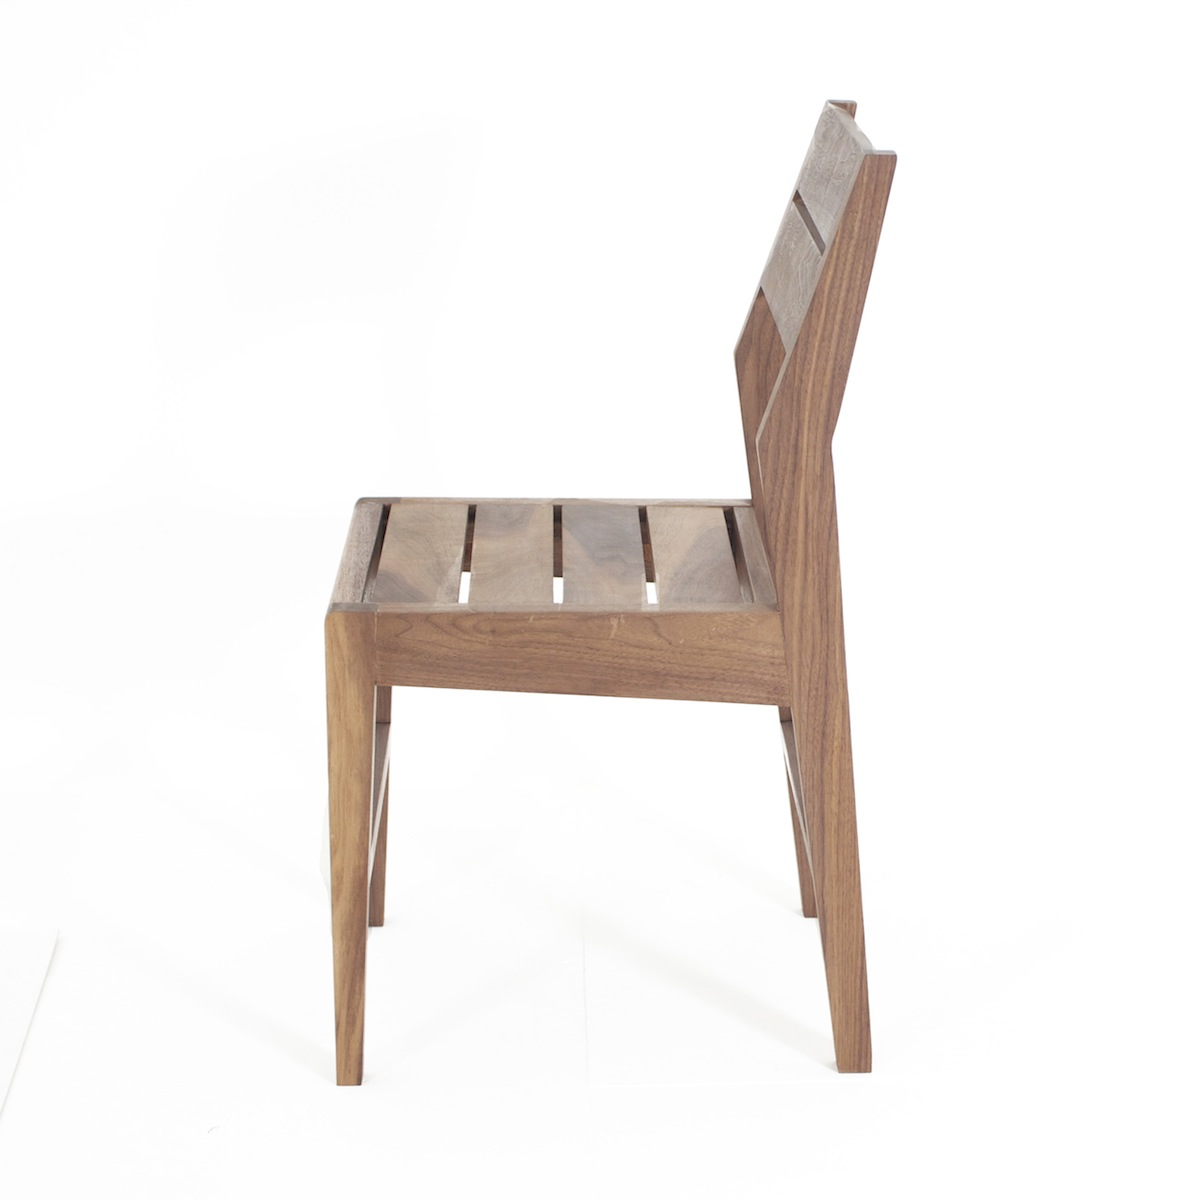 Wooden chair side chat de baito